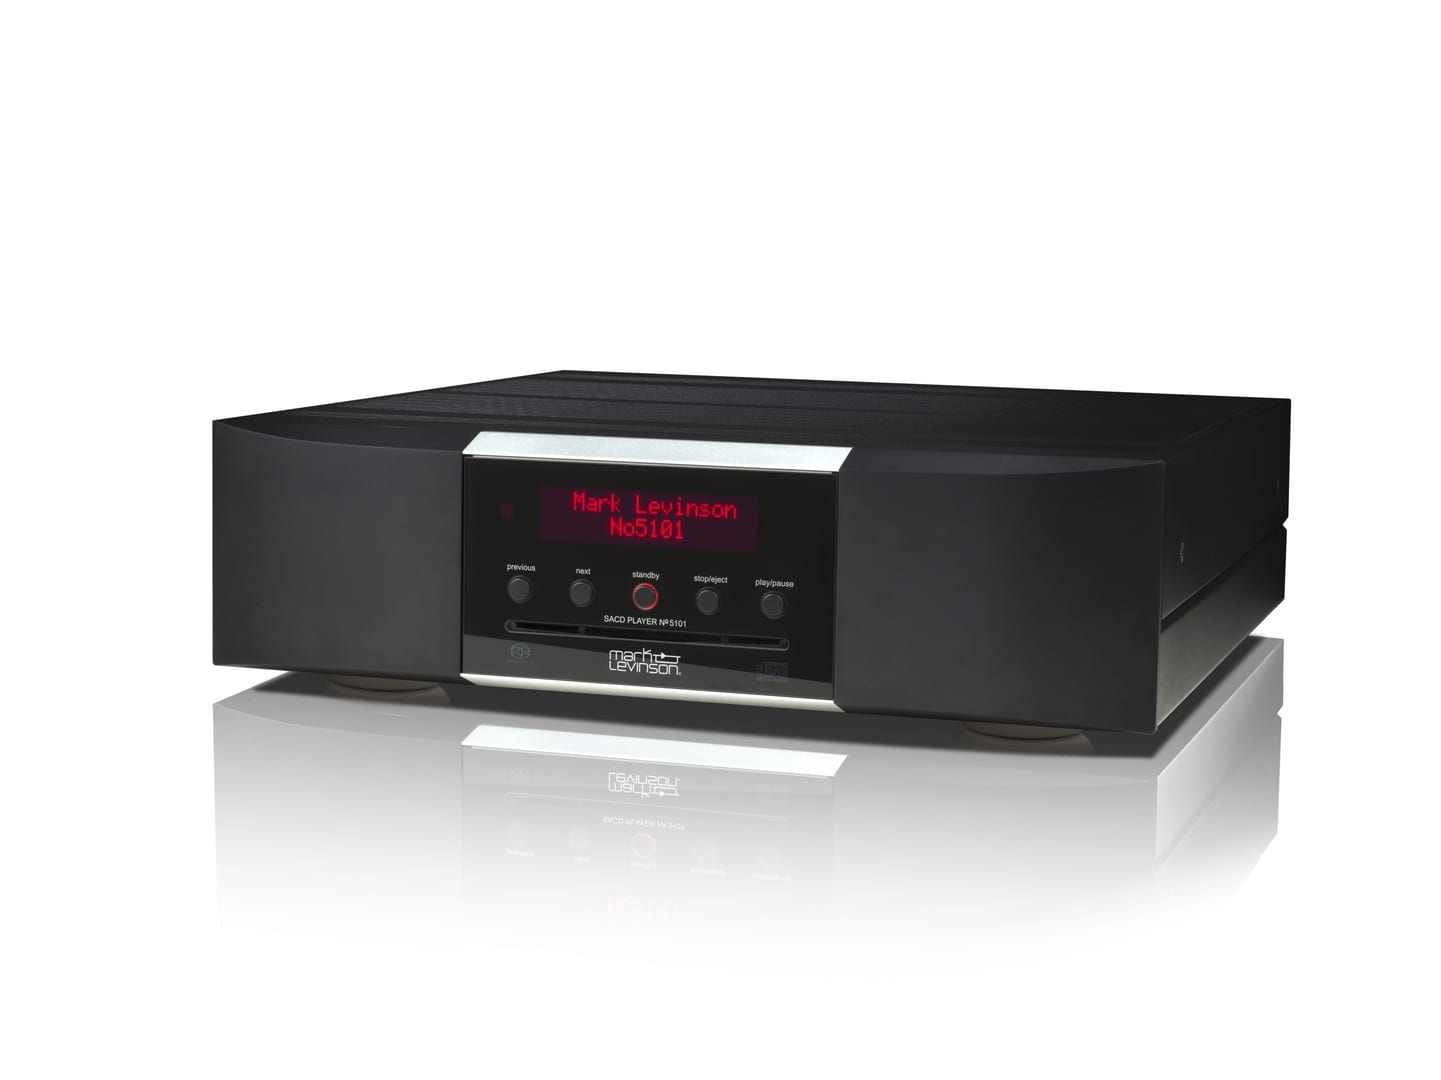 New Mark Levinson No 5101 Streaming Sacd Player and DAC Defies Convention